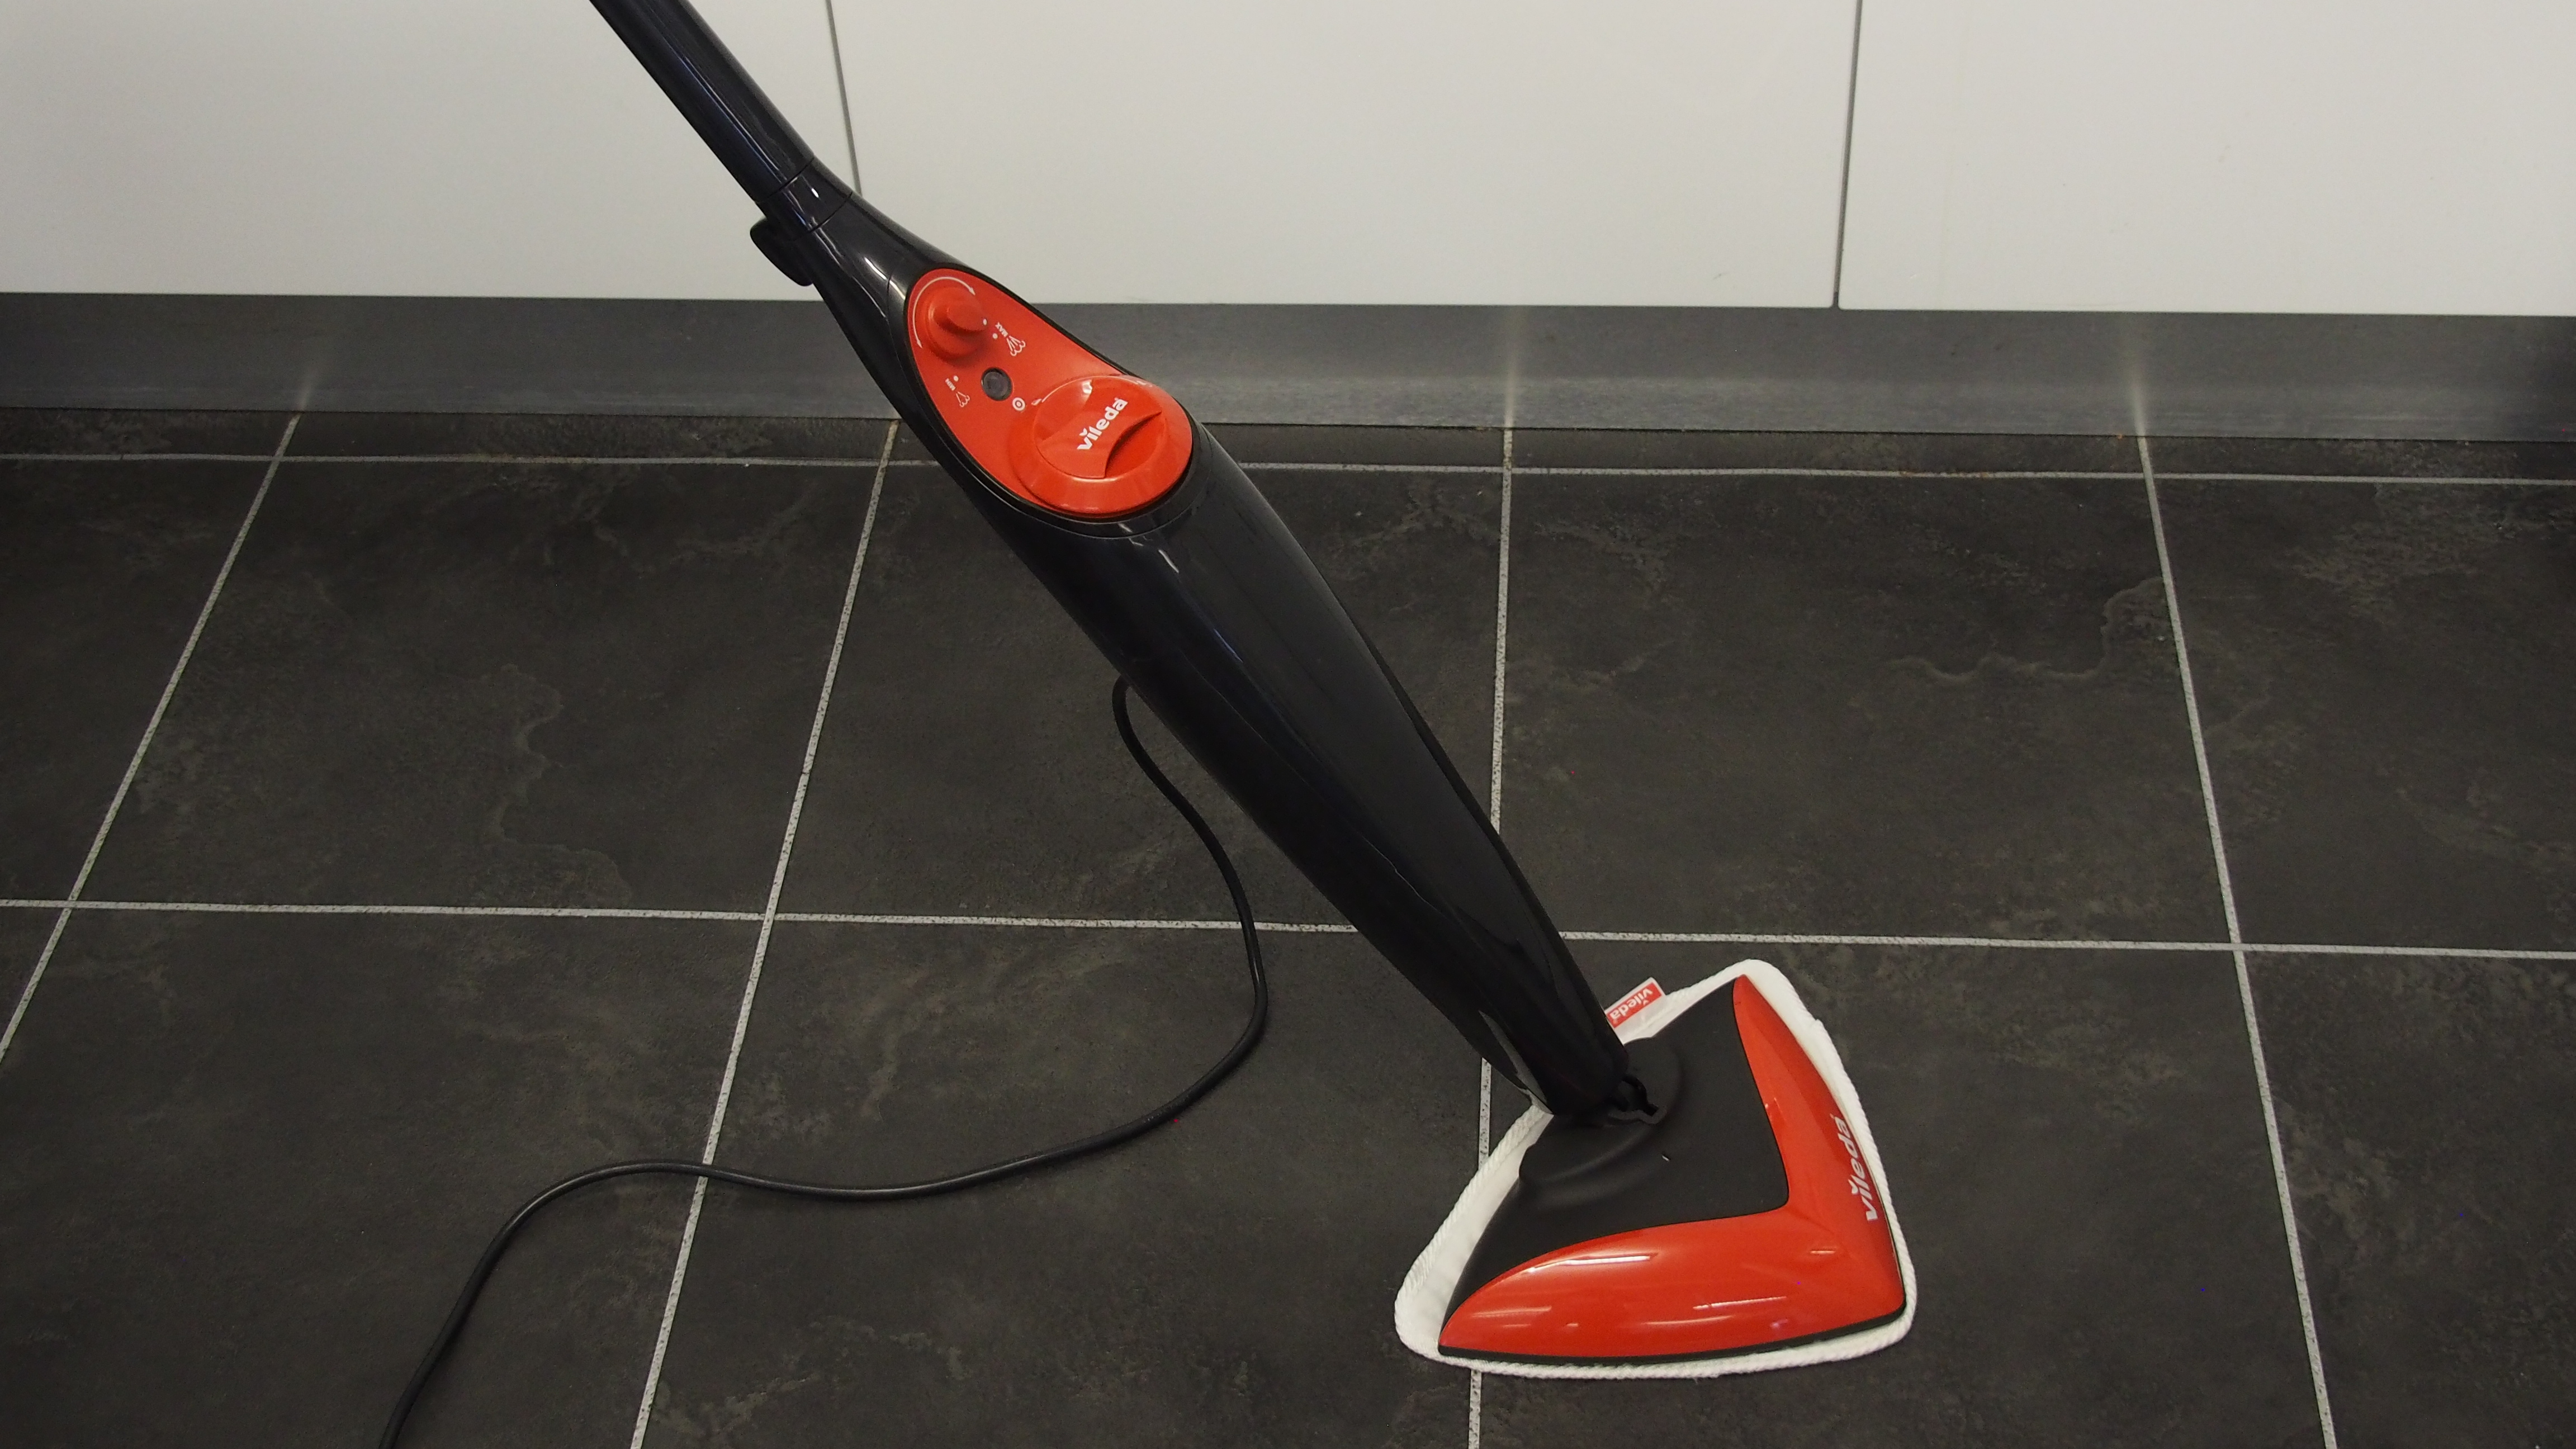 Best vacuum cleaner for tiled floors uk 5 best buy vacuum cleaners best mop for tile floors 2017 reviews guide mr cleaning dailygadgetfo Image collections